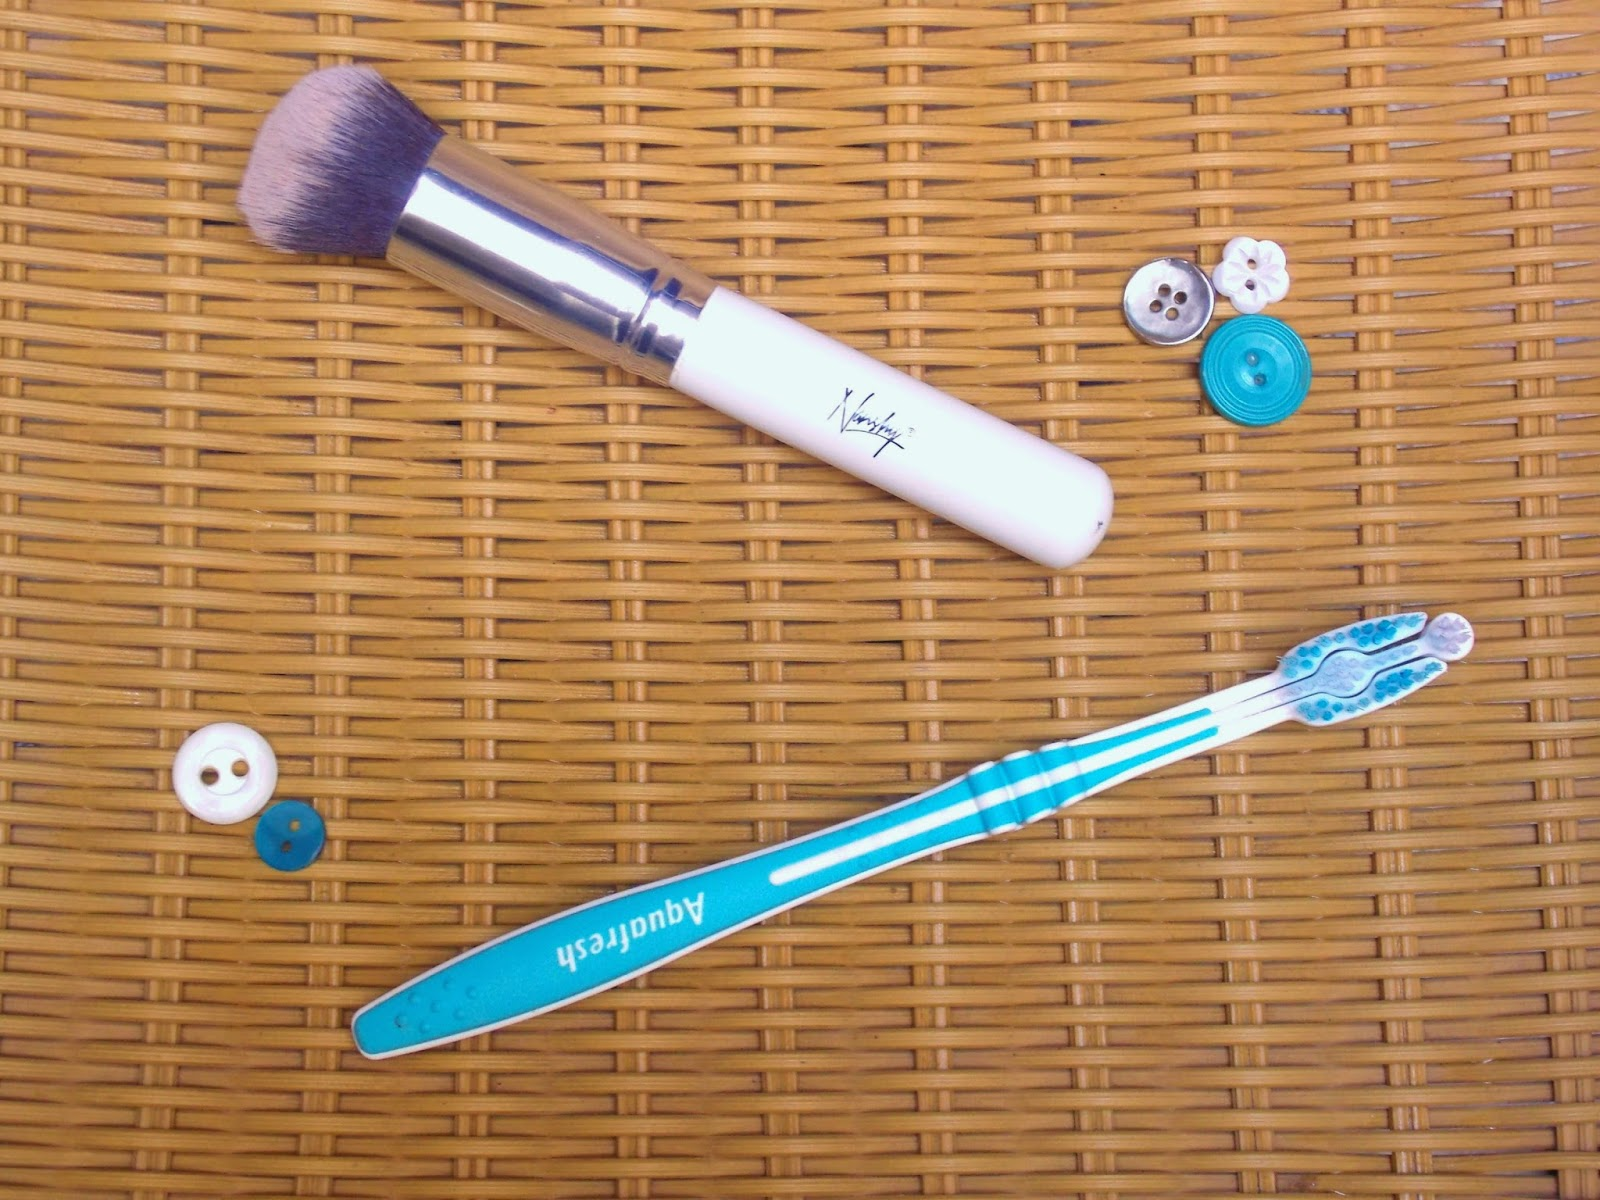 Beauty, correct tools, daily make up brushes, how to create flawless lip make up, make up brush collection, using make up brushes, why do I need make up brushes,